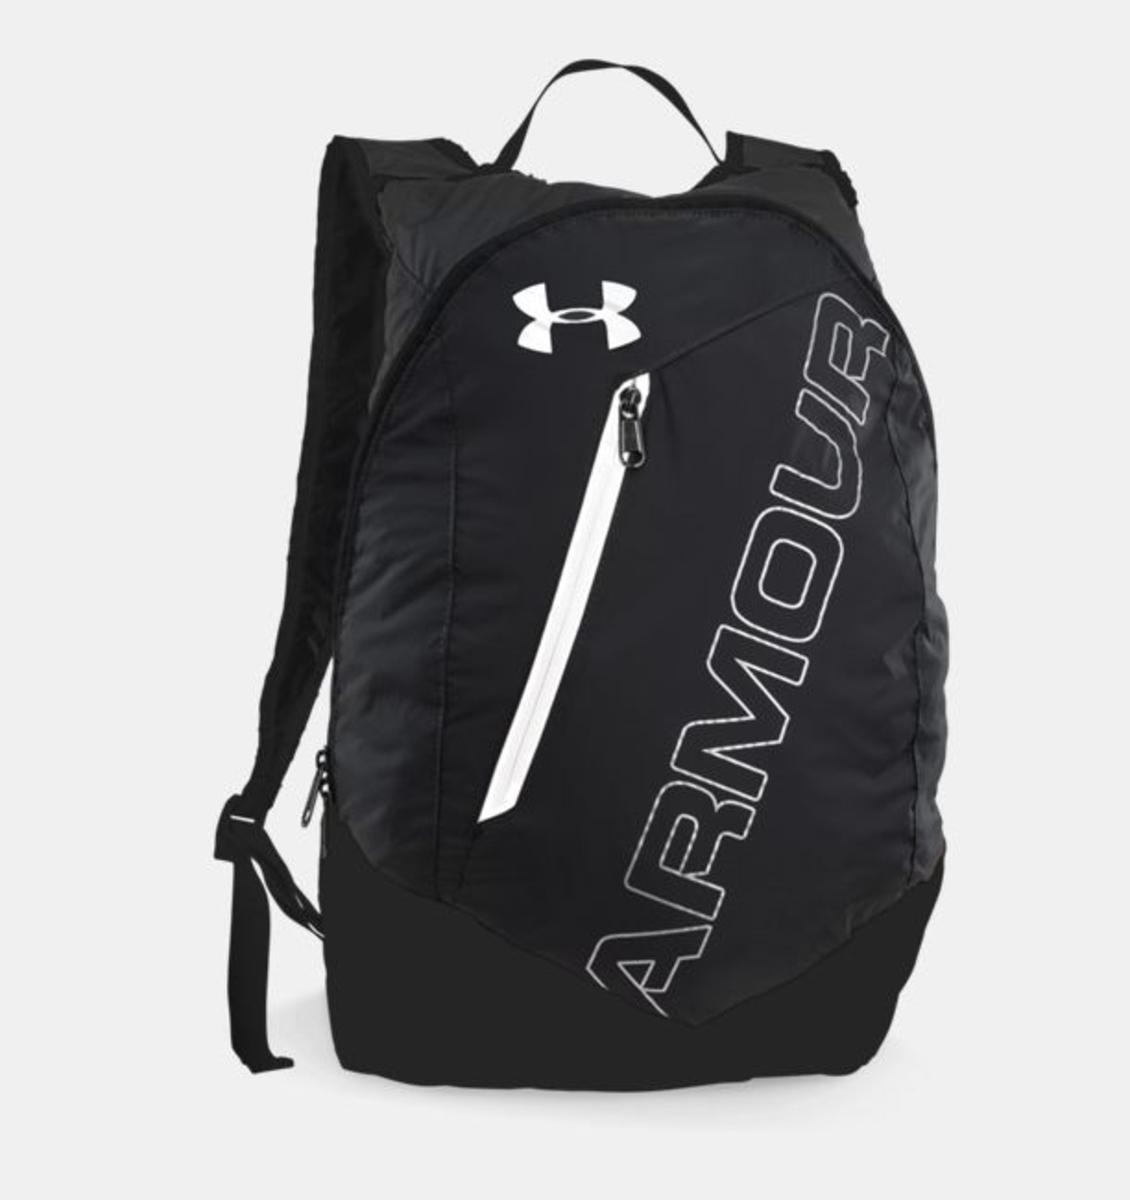 Under Armour UA Adaptable Backpack Bag - The Warming Store 3717bee5ec52b